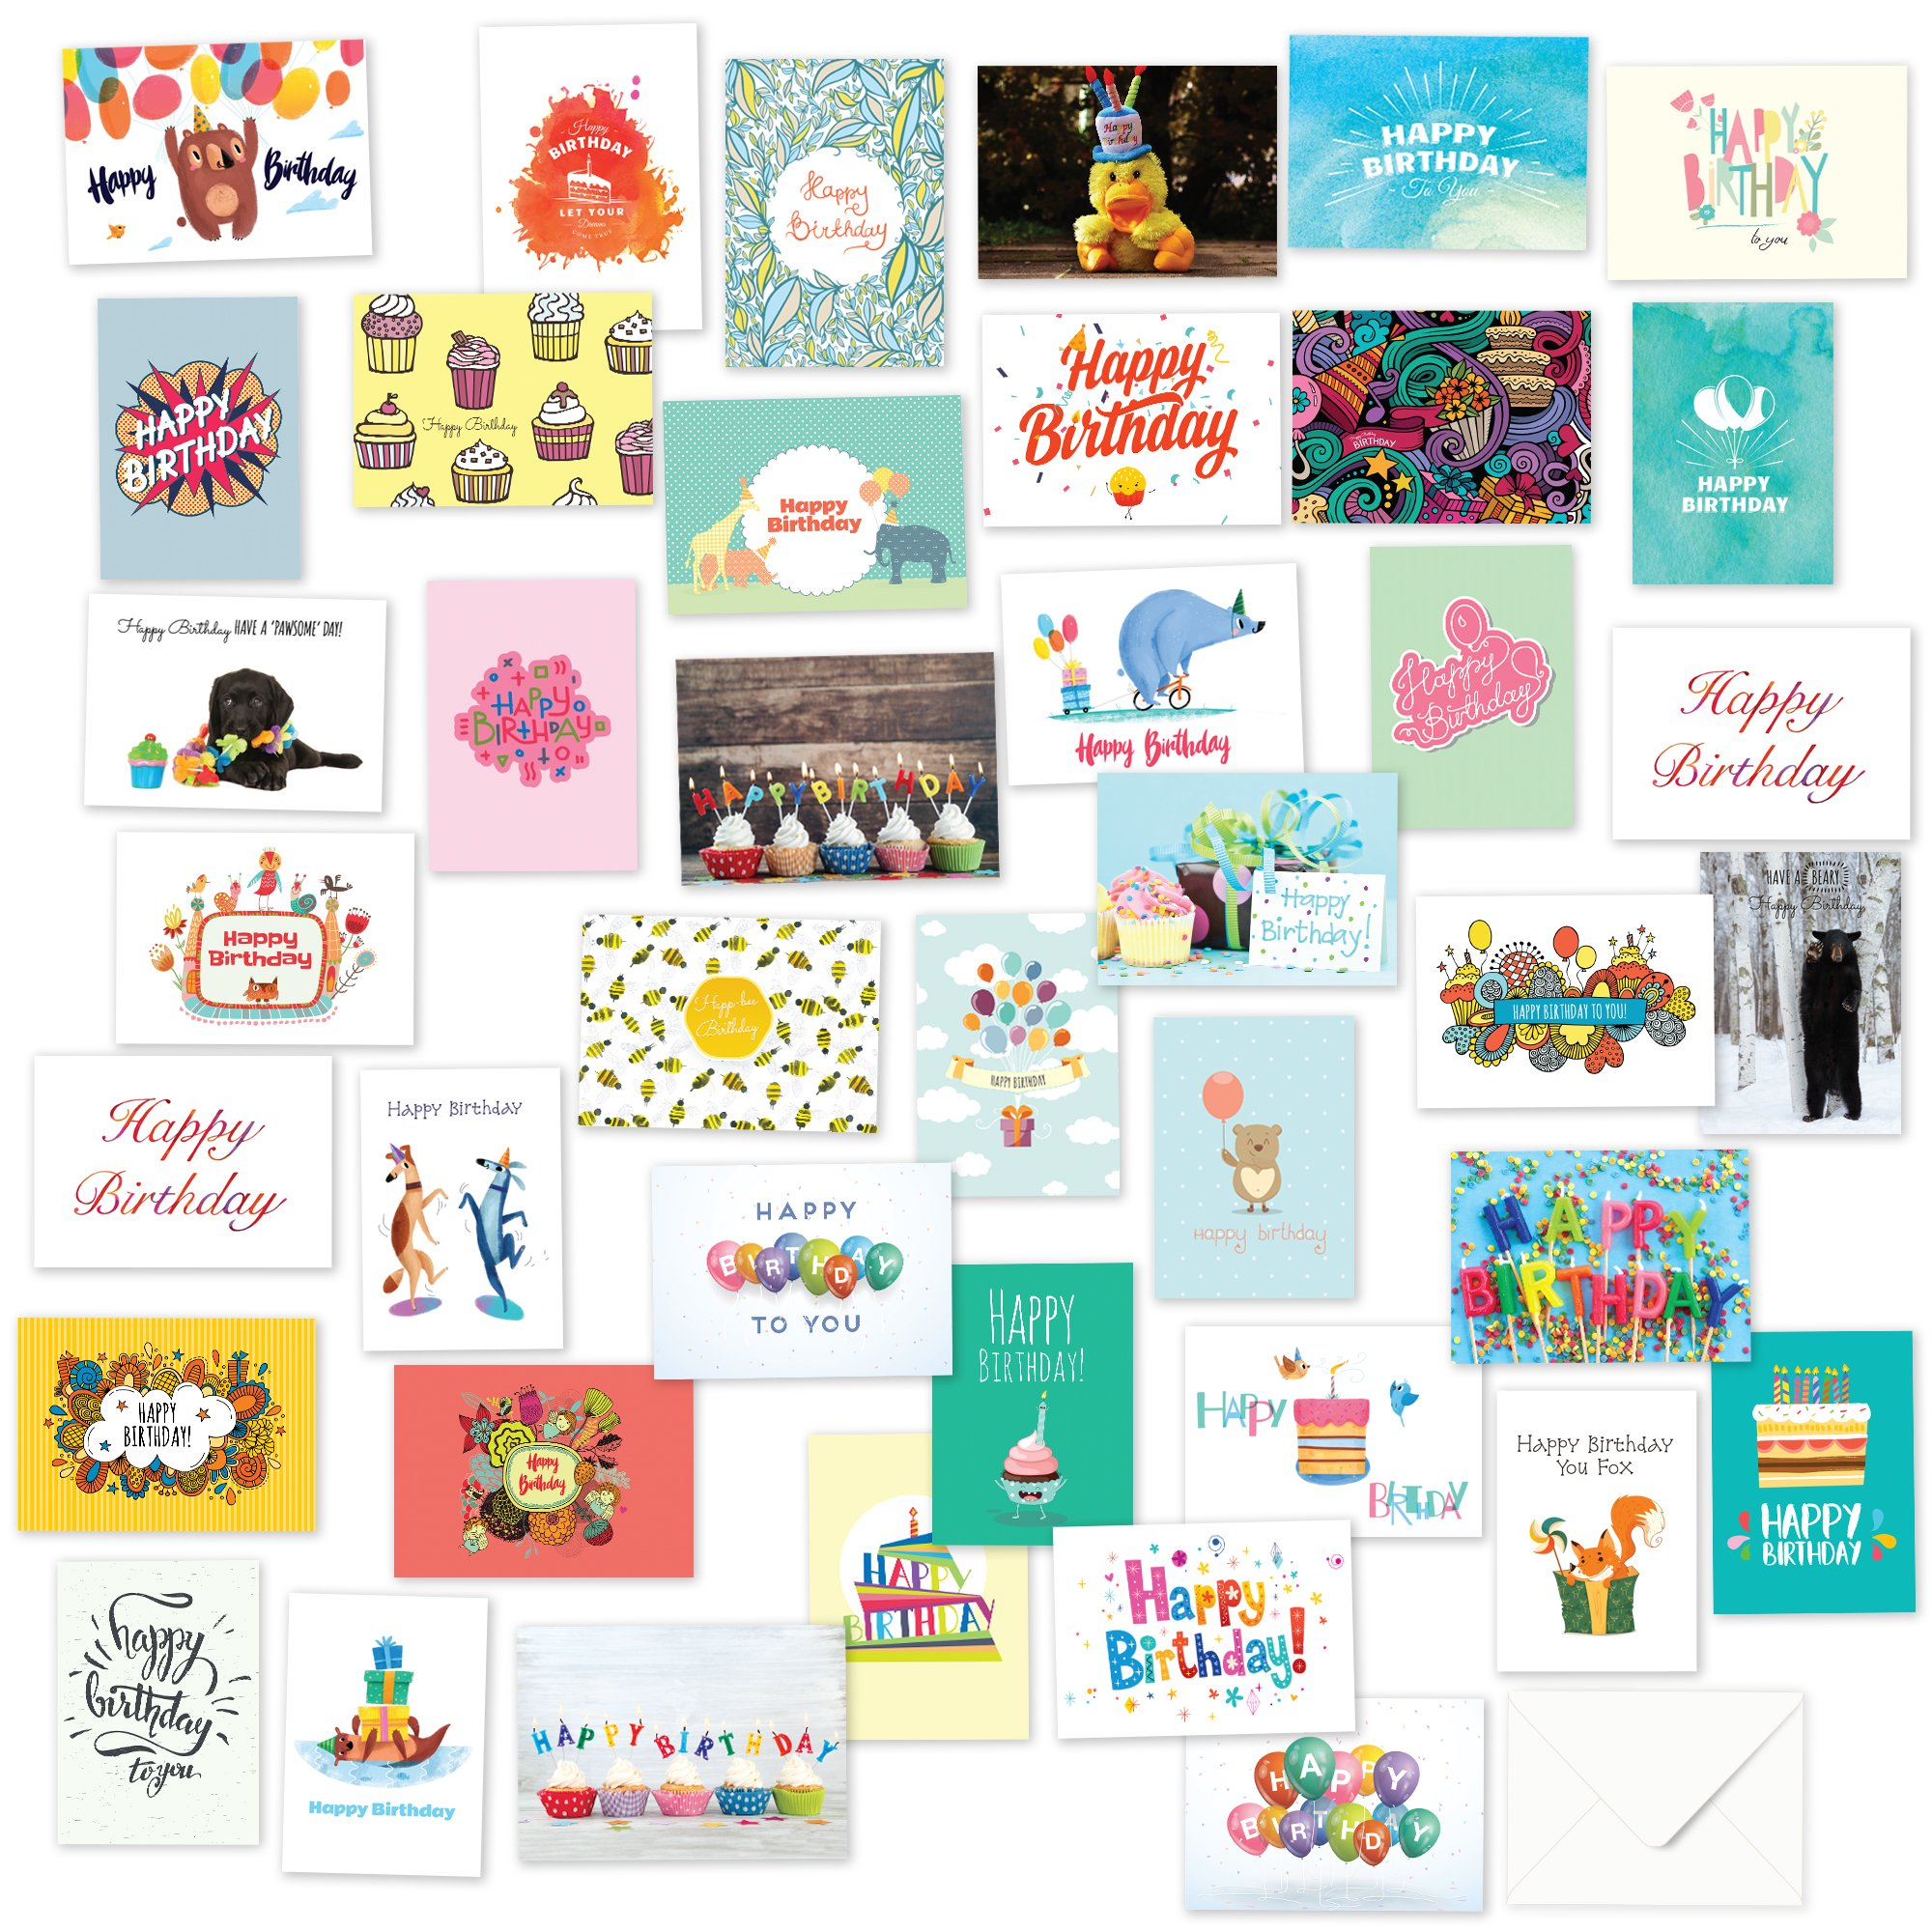 40 Birthday Cards Assortment with Envelopes - Blank Inside - Men Women Kids Parents Coworkers by Fresh & Lucky